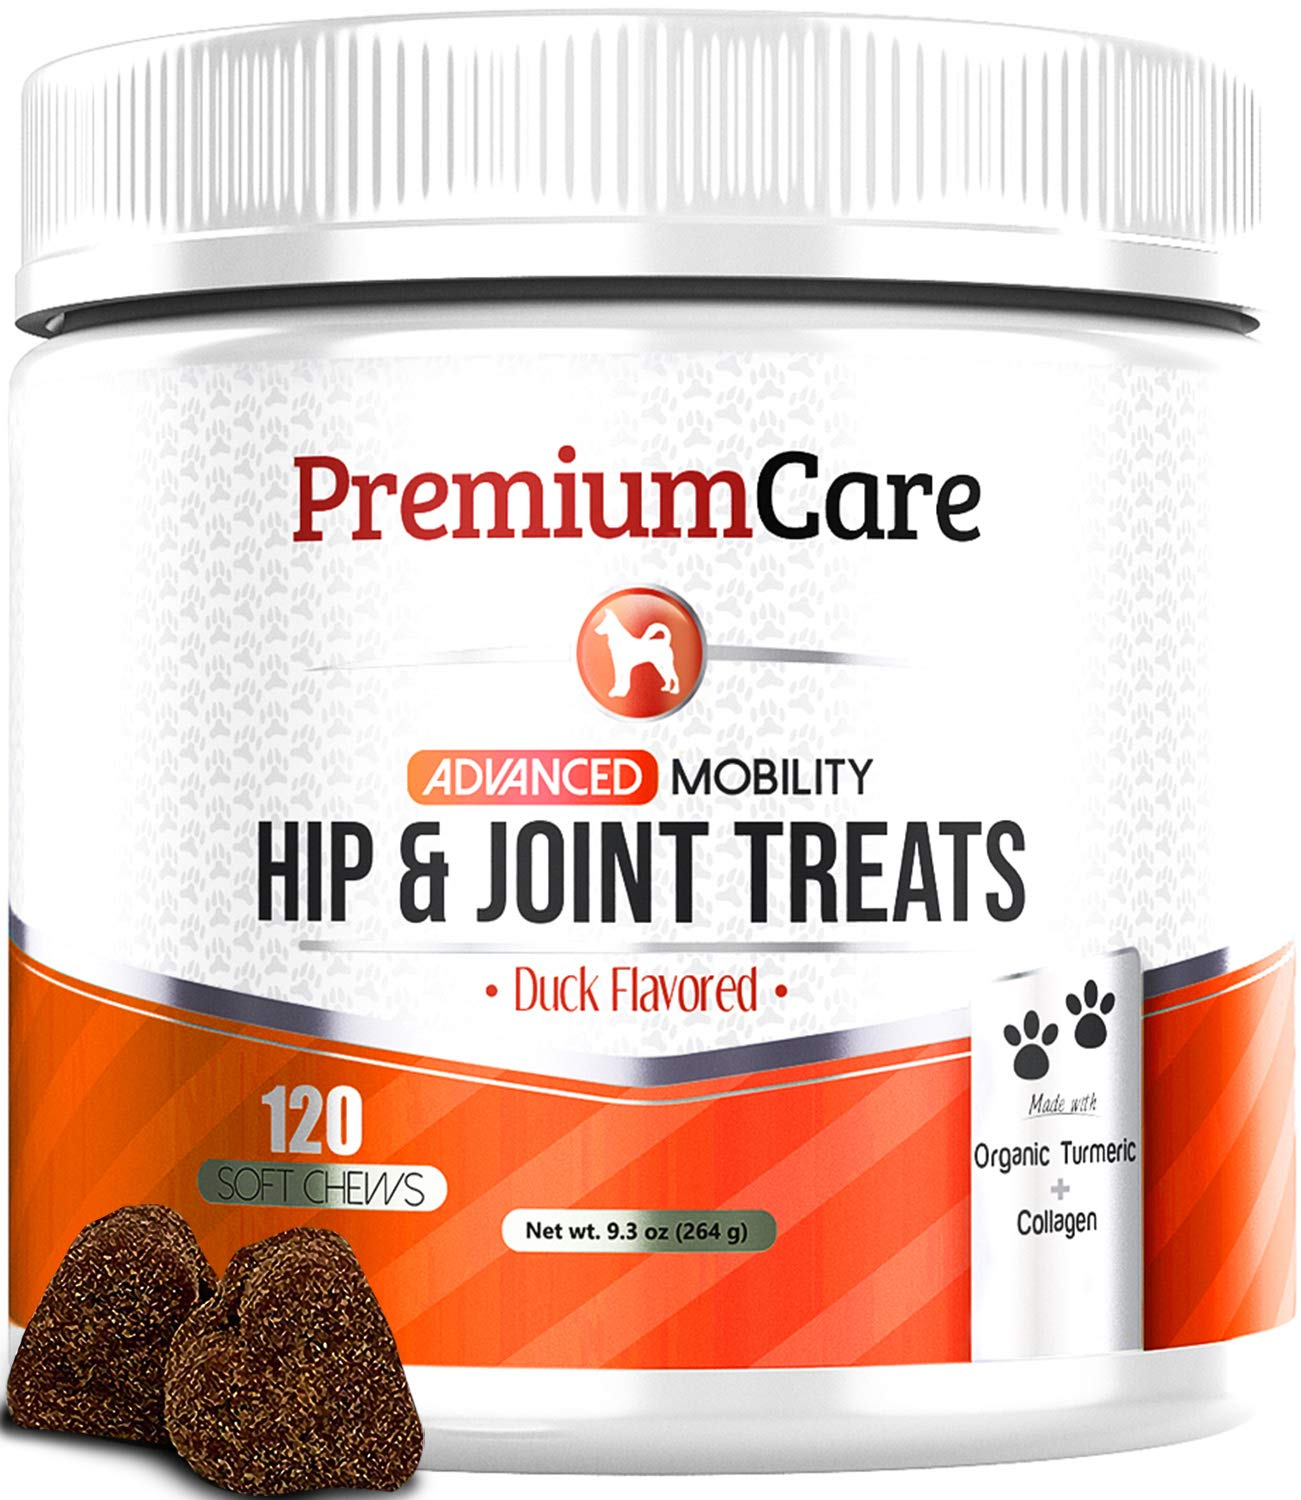 Glucosamine for Dogs - Advanced Hip & Joint Supplement for Dogs with Organic Turmeric, Chondroitin, Collagen & MSM - Supports Healthy Joint Function and Helps with Pain Relief - 120 Count Made In USA by PREMIUM CARE